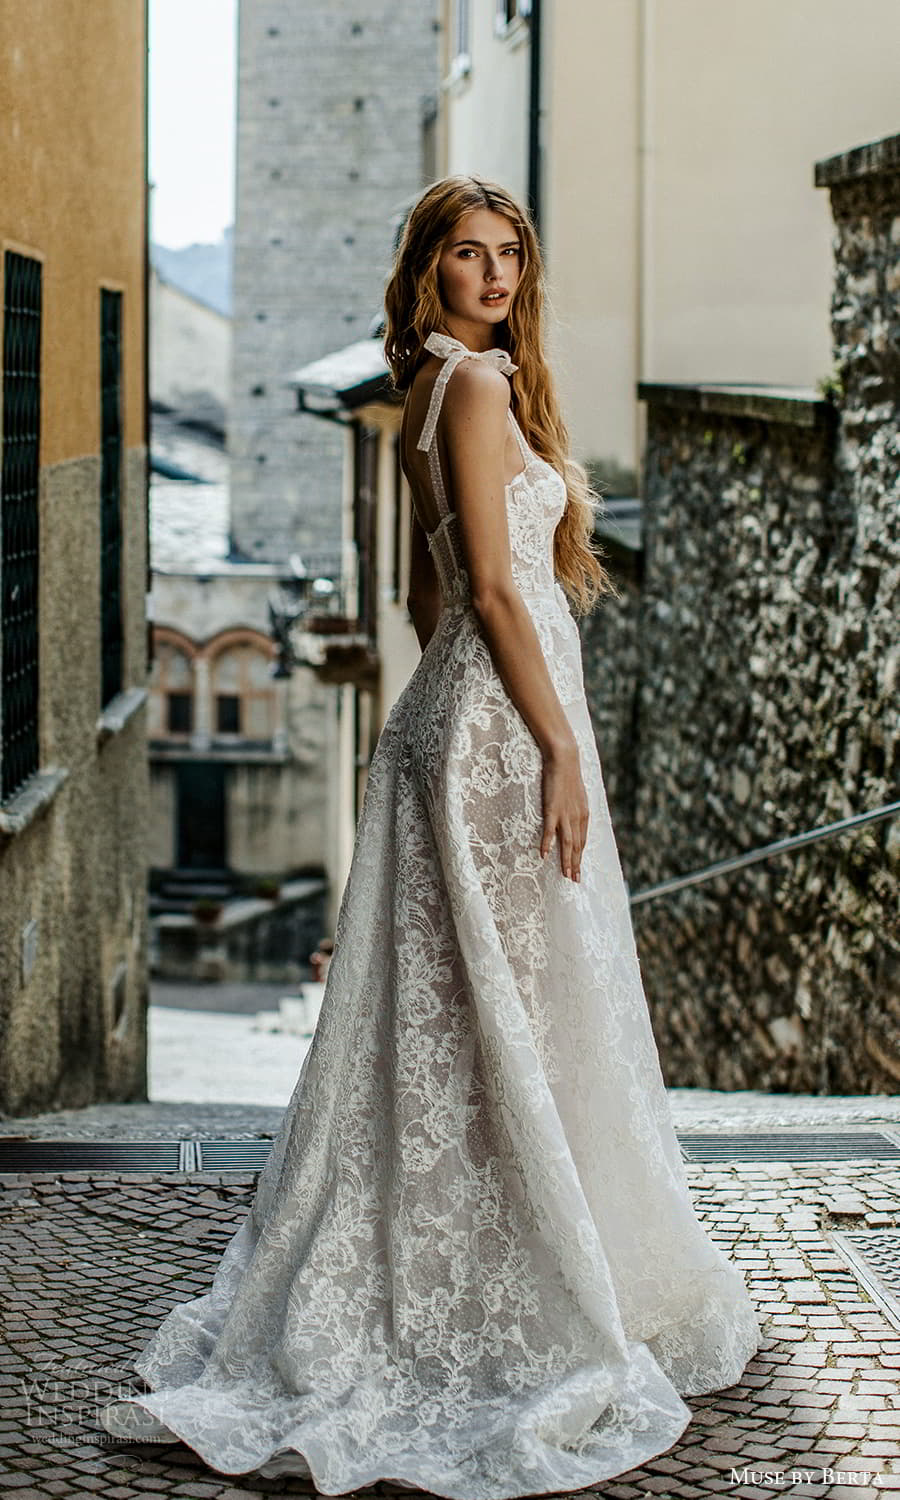 muse by berta spring 2022 bridal sleevelss straps semi sweetheart neckline fully embellished lace a line ball gown wedding dress chapel train (8) bv